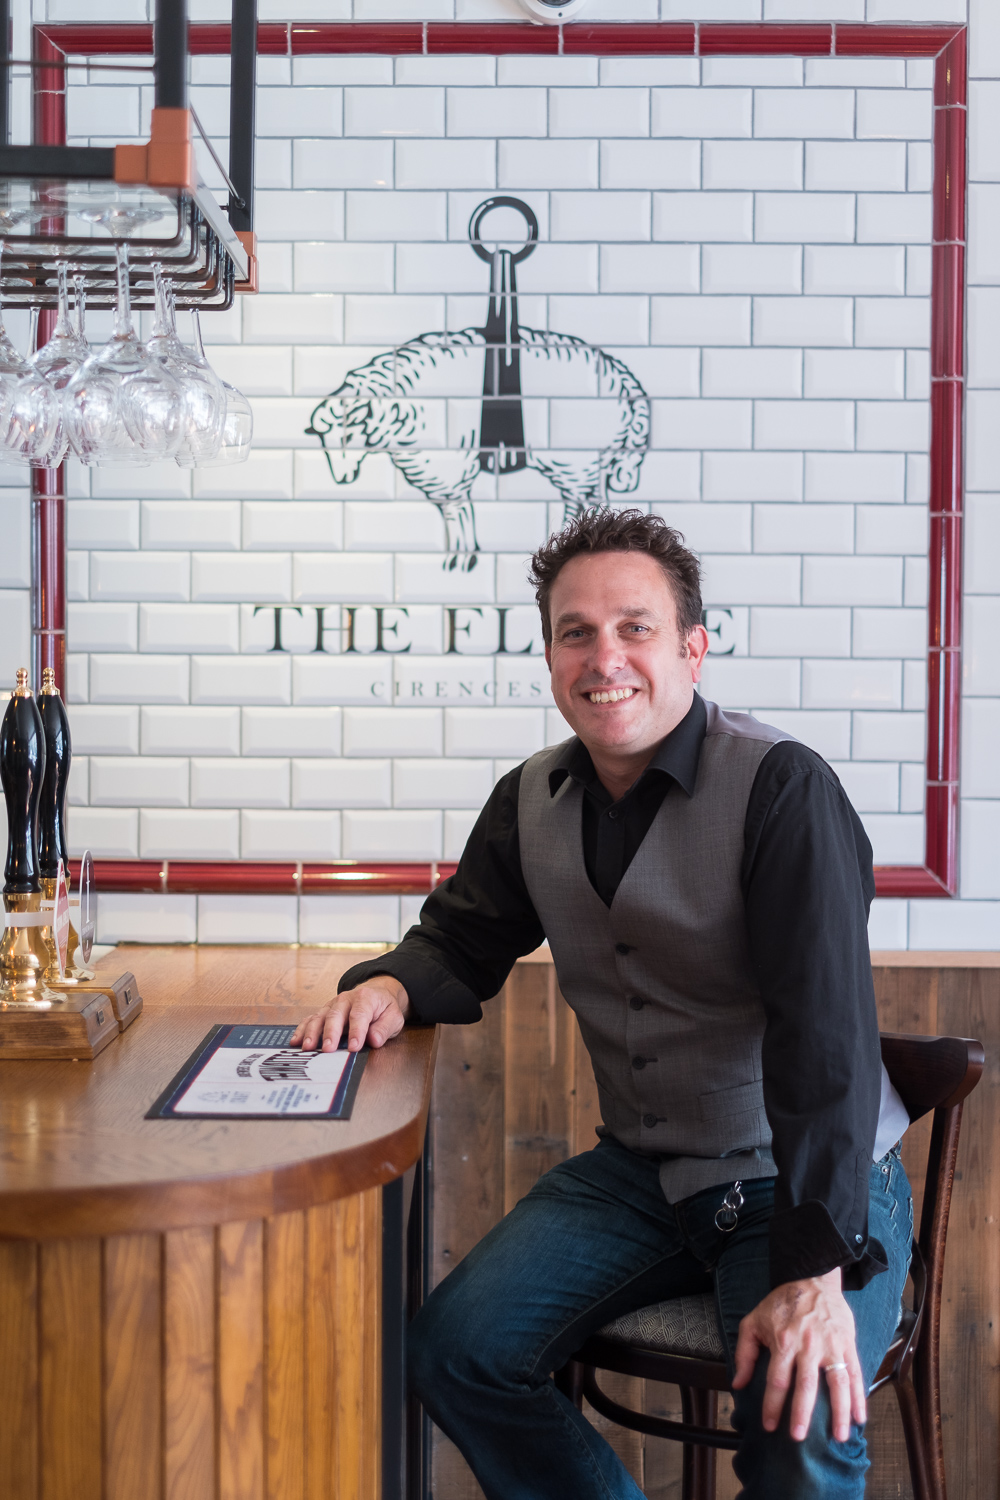 Portrait photography of Thwaites inn manager